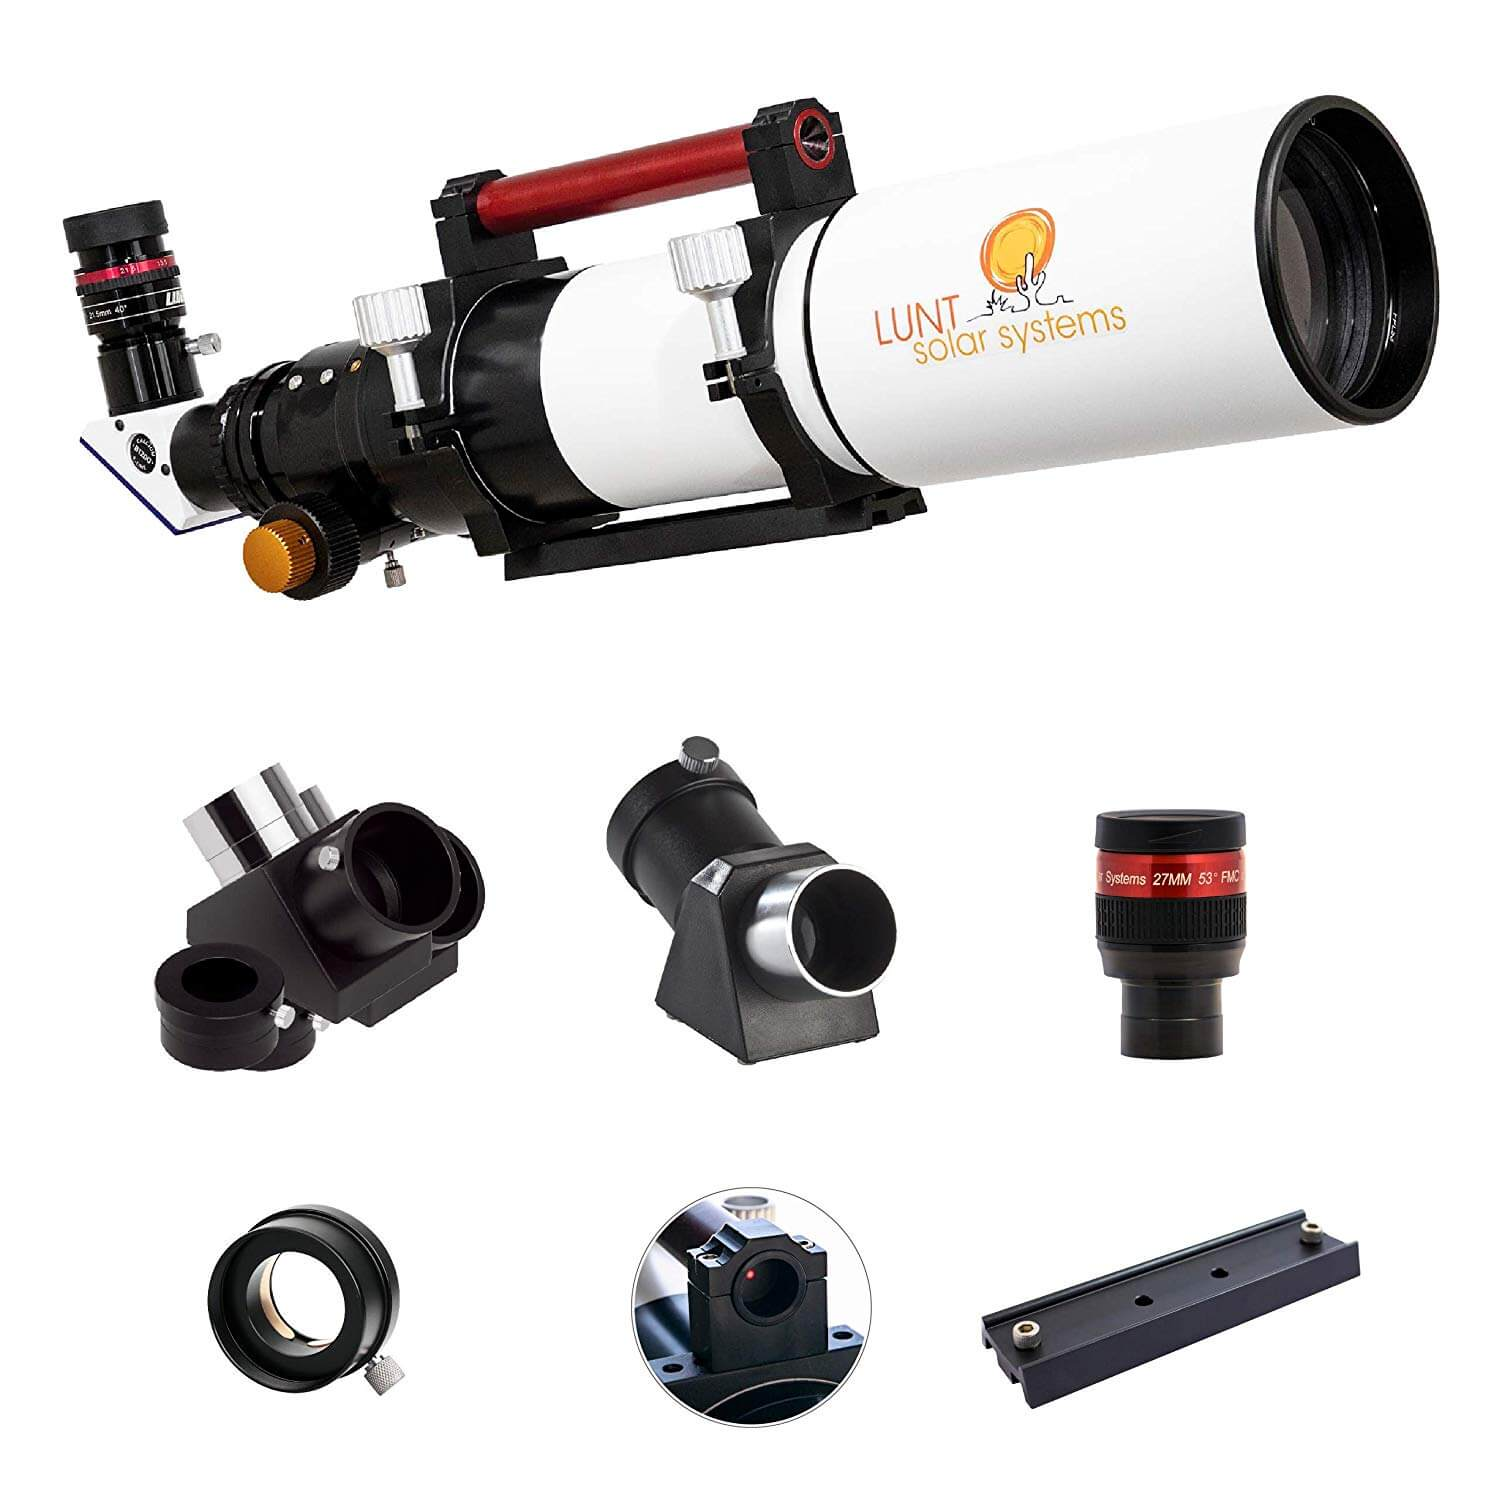 LUNT 100mm Modular Telescope Starter Package LS100MT